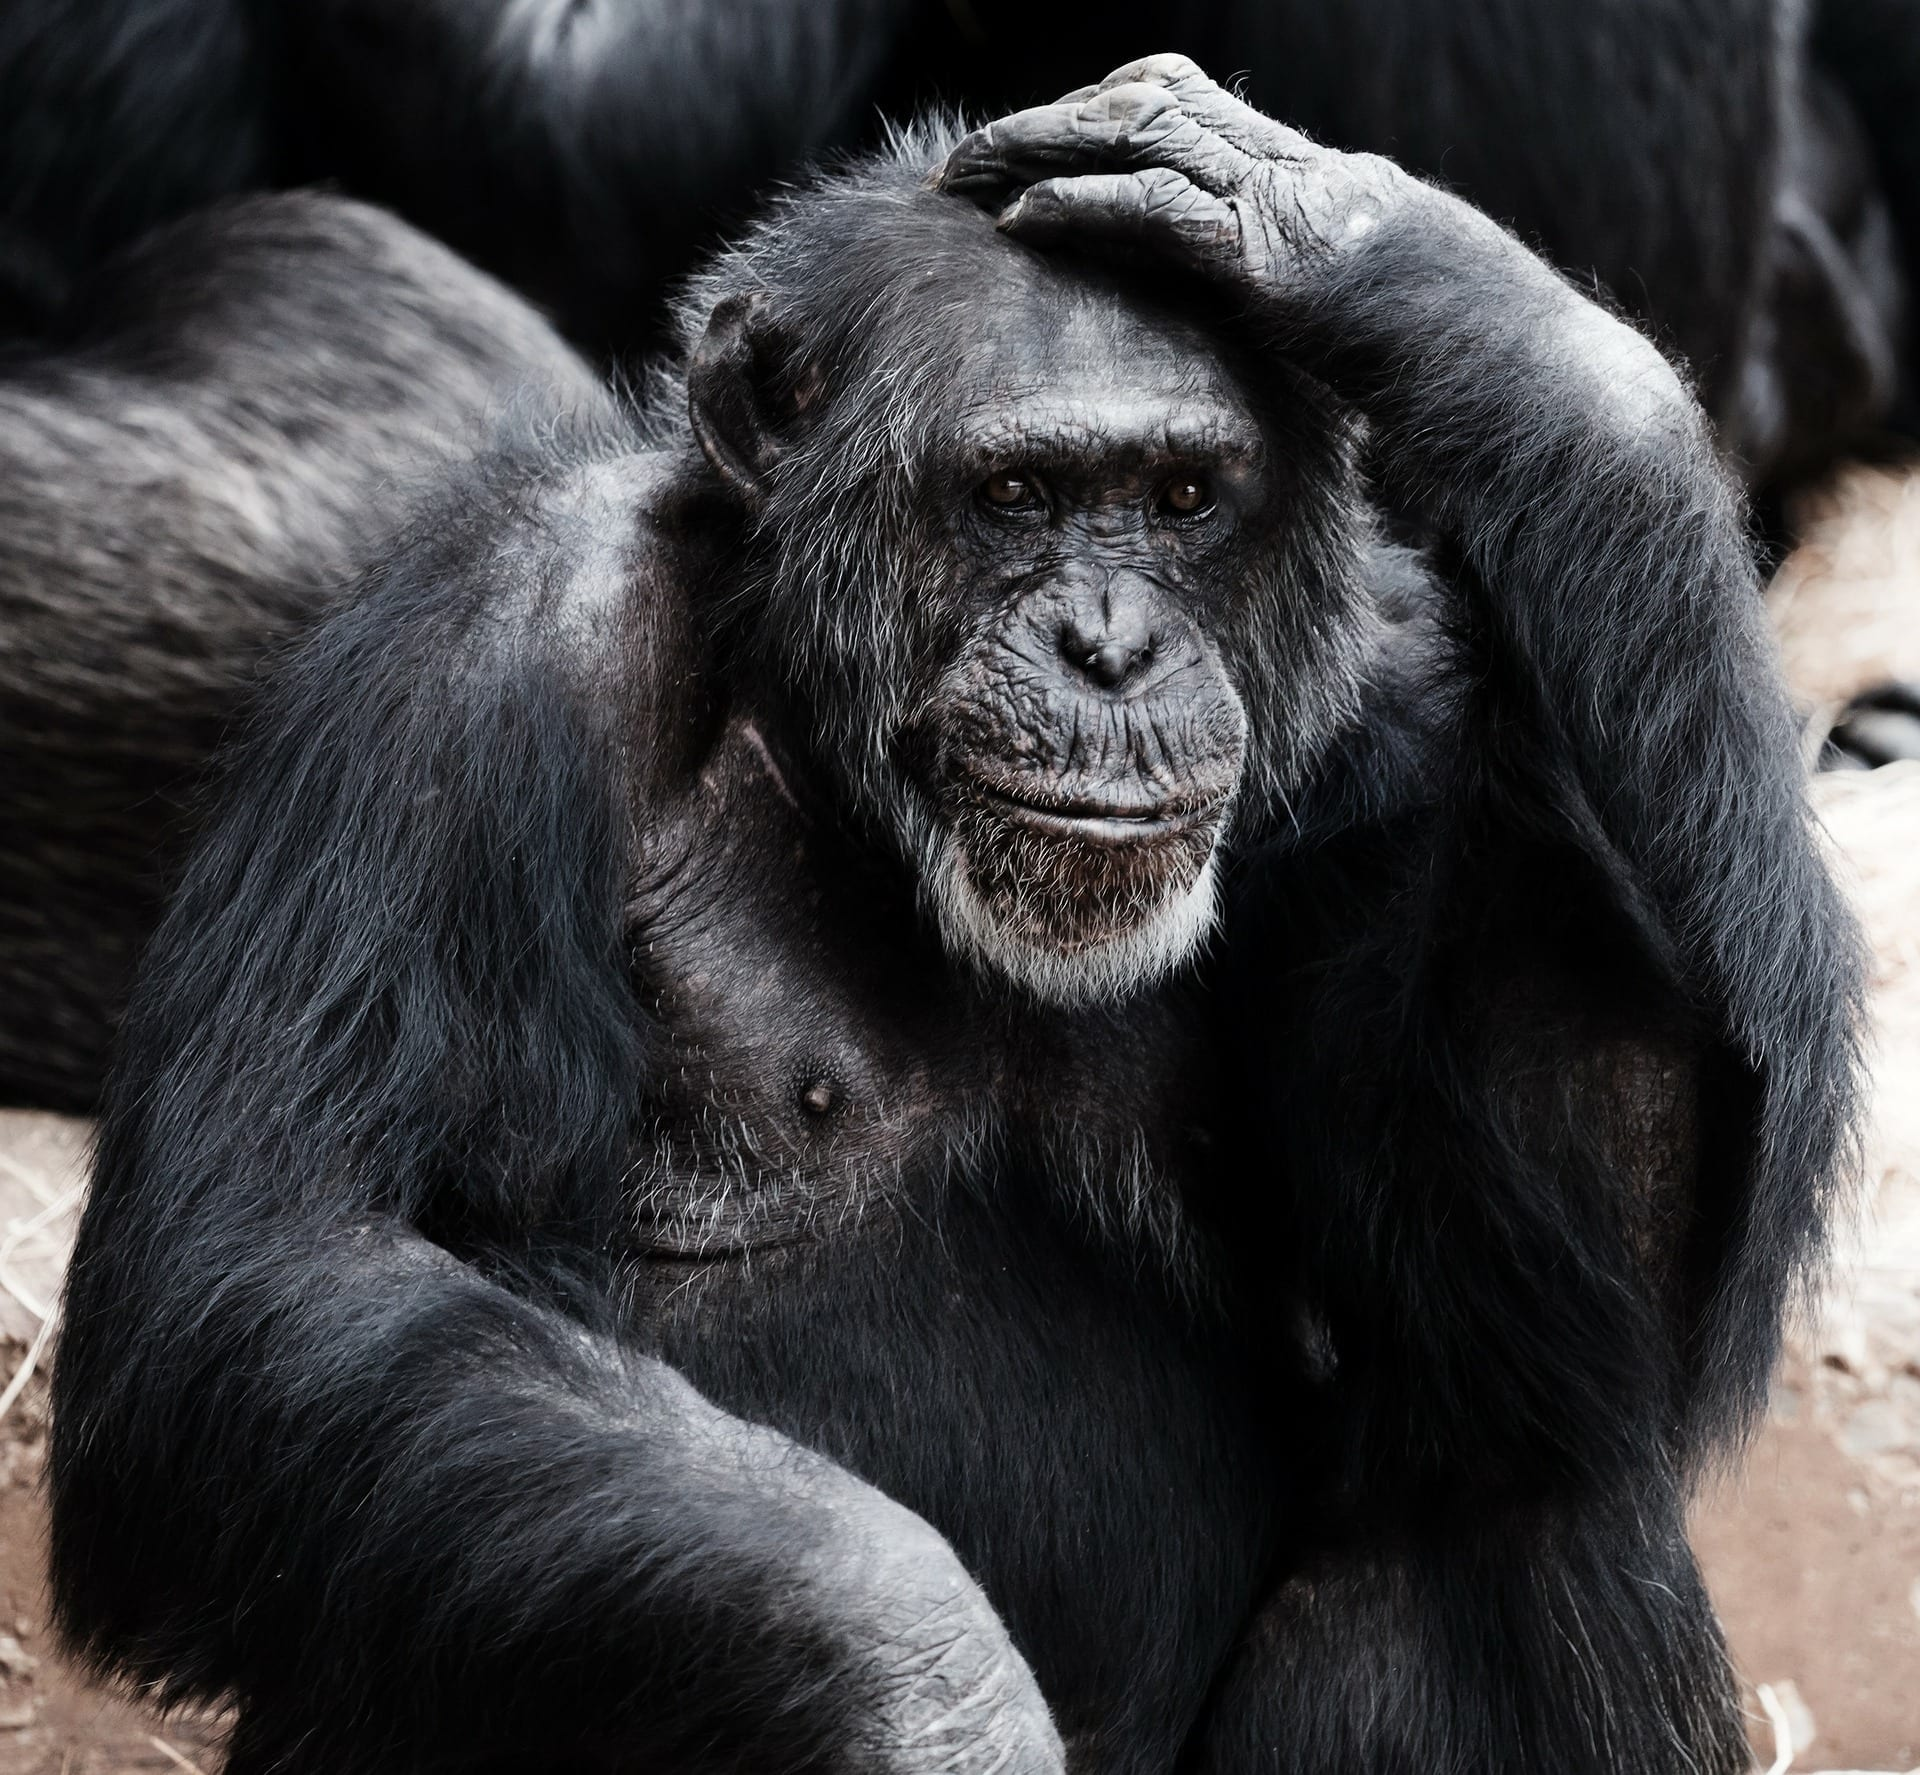 Chimp with a hand on its head